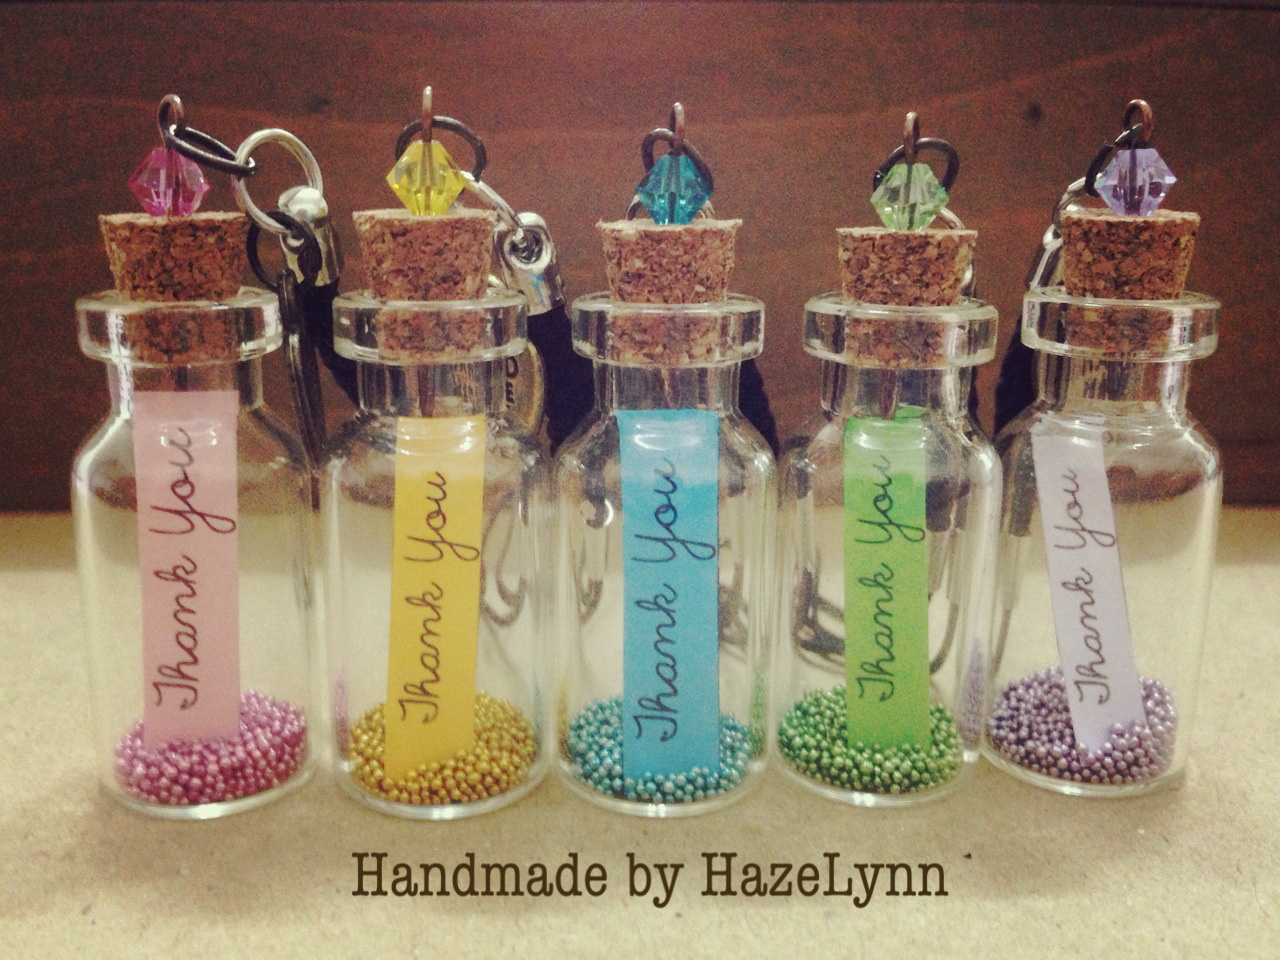 Handmade By Hazelynn Gift Idea Thank You Bottle